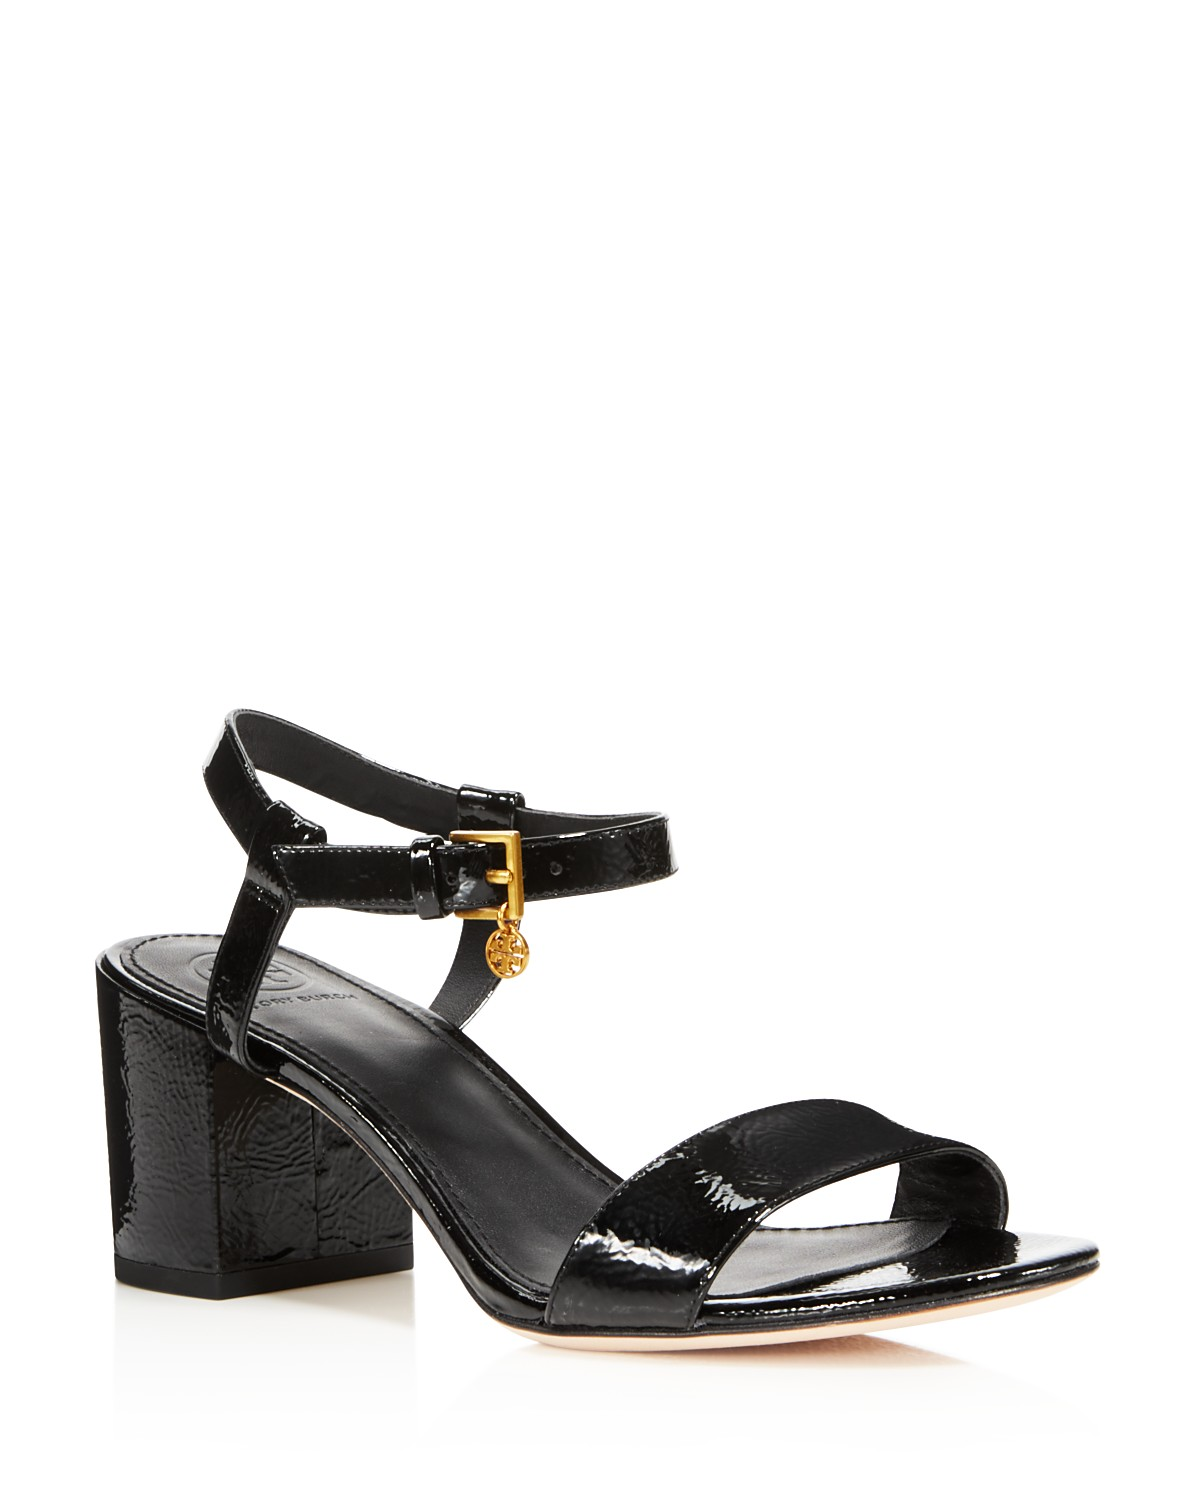 Tory Burch Women's Laurel Patent Leather Ankle Strap Sandals - 100% Exclusive 5QVRQ